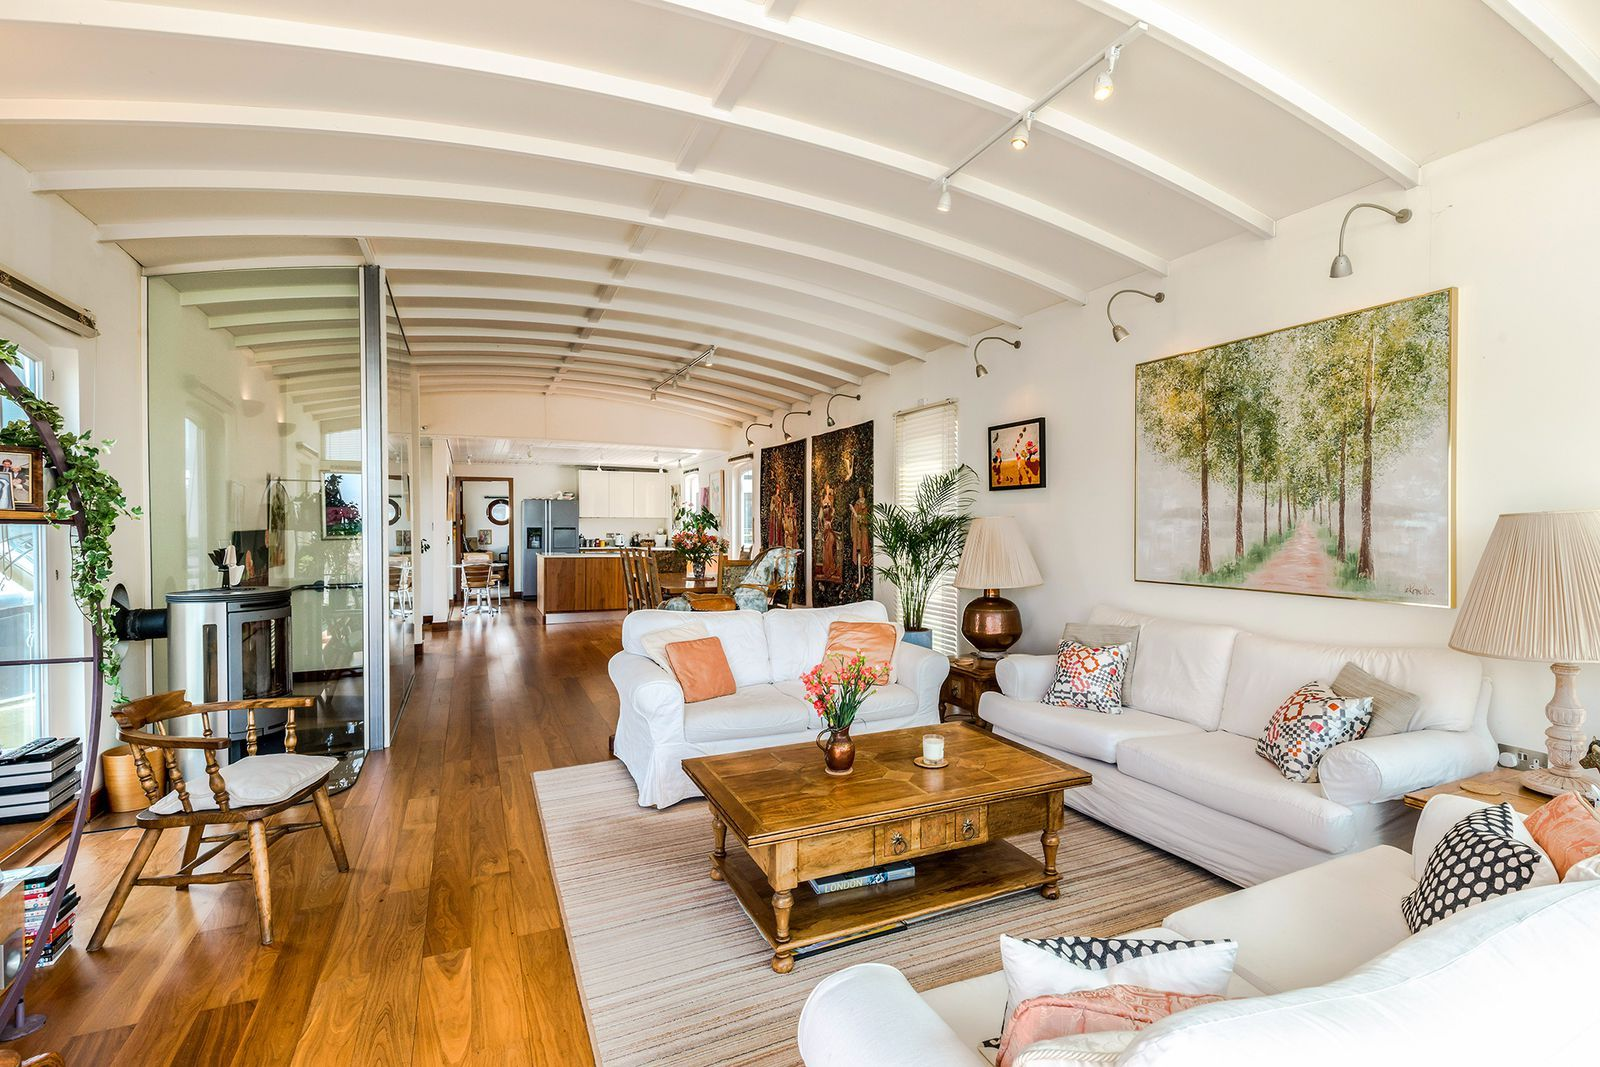 Amazing floating home with riverside views for sale in